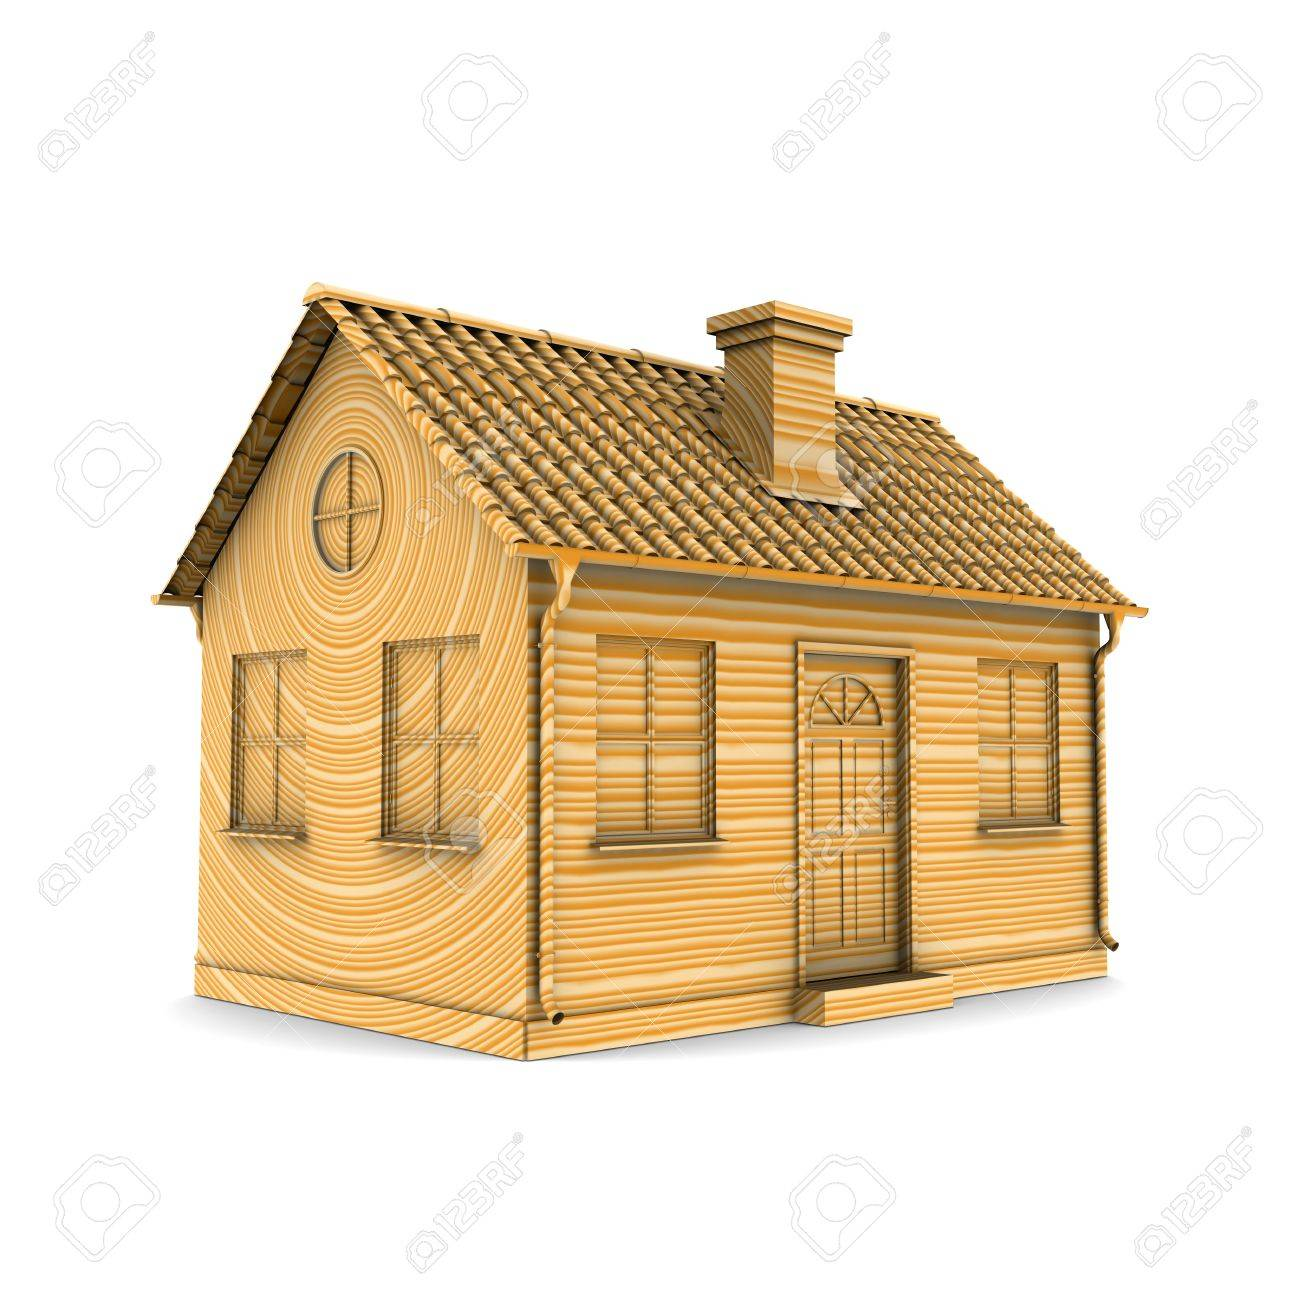 House of Wood. 3d rendering Stock Photo - 12362642